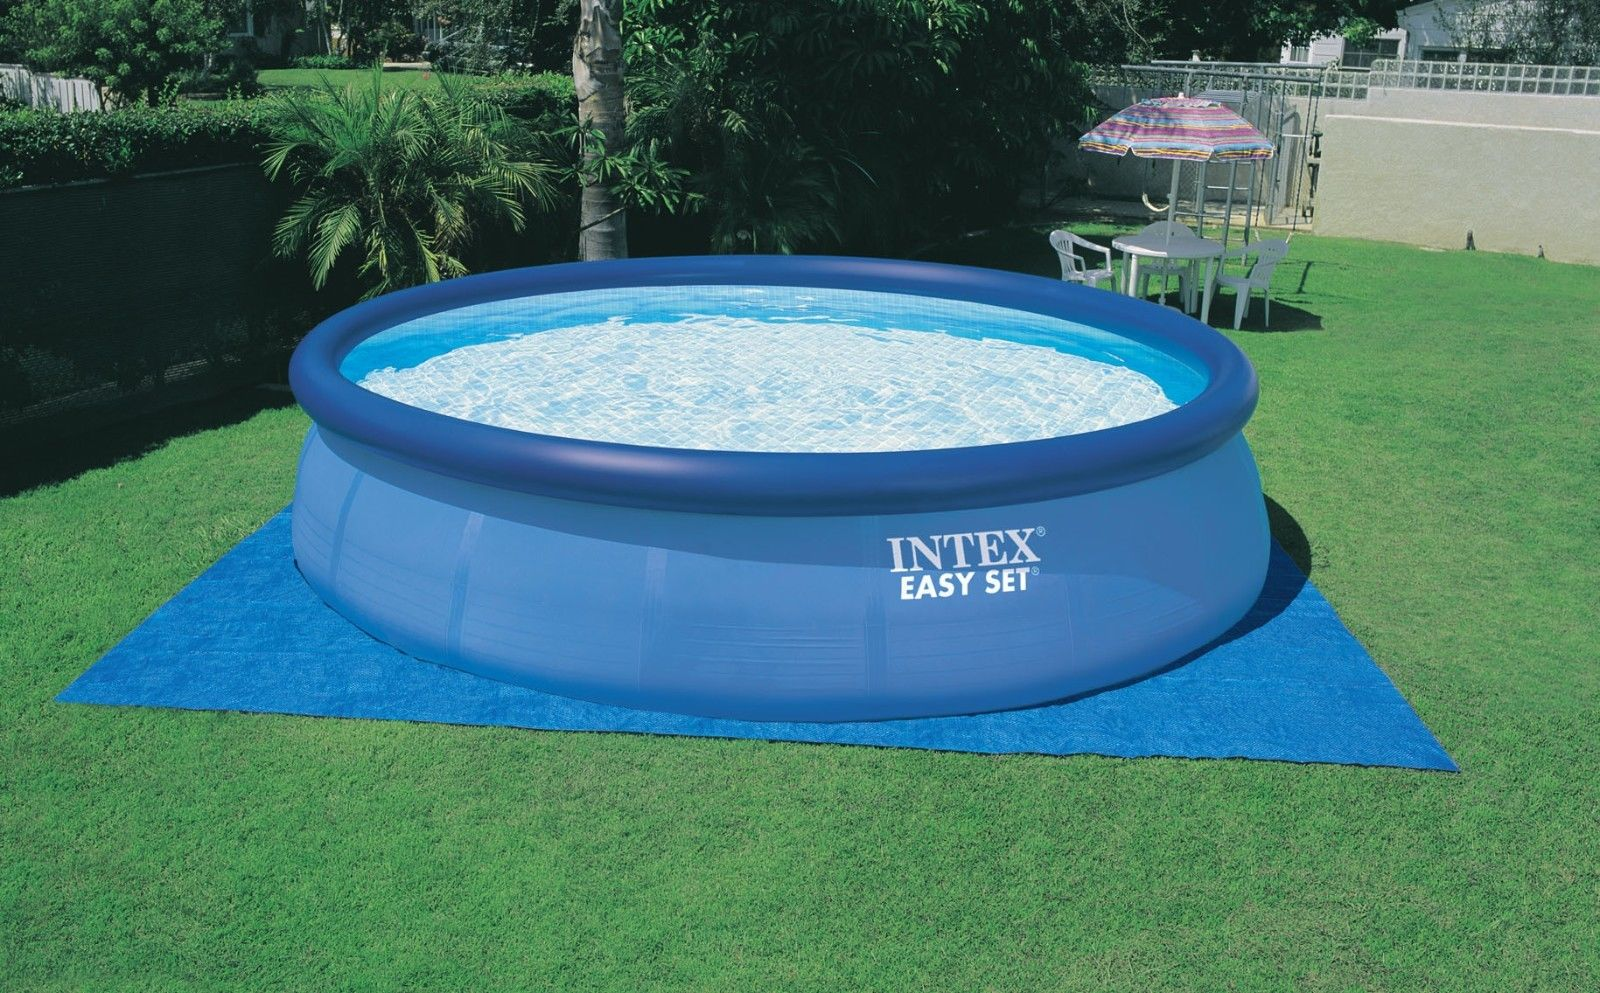 Intex 15 x 48 Easy Set Above Ground Swimming Pool w/ 1000 GPH GFCI ...